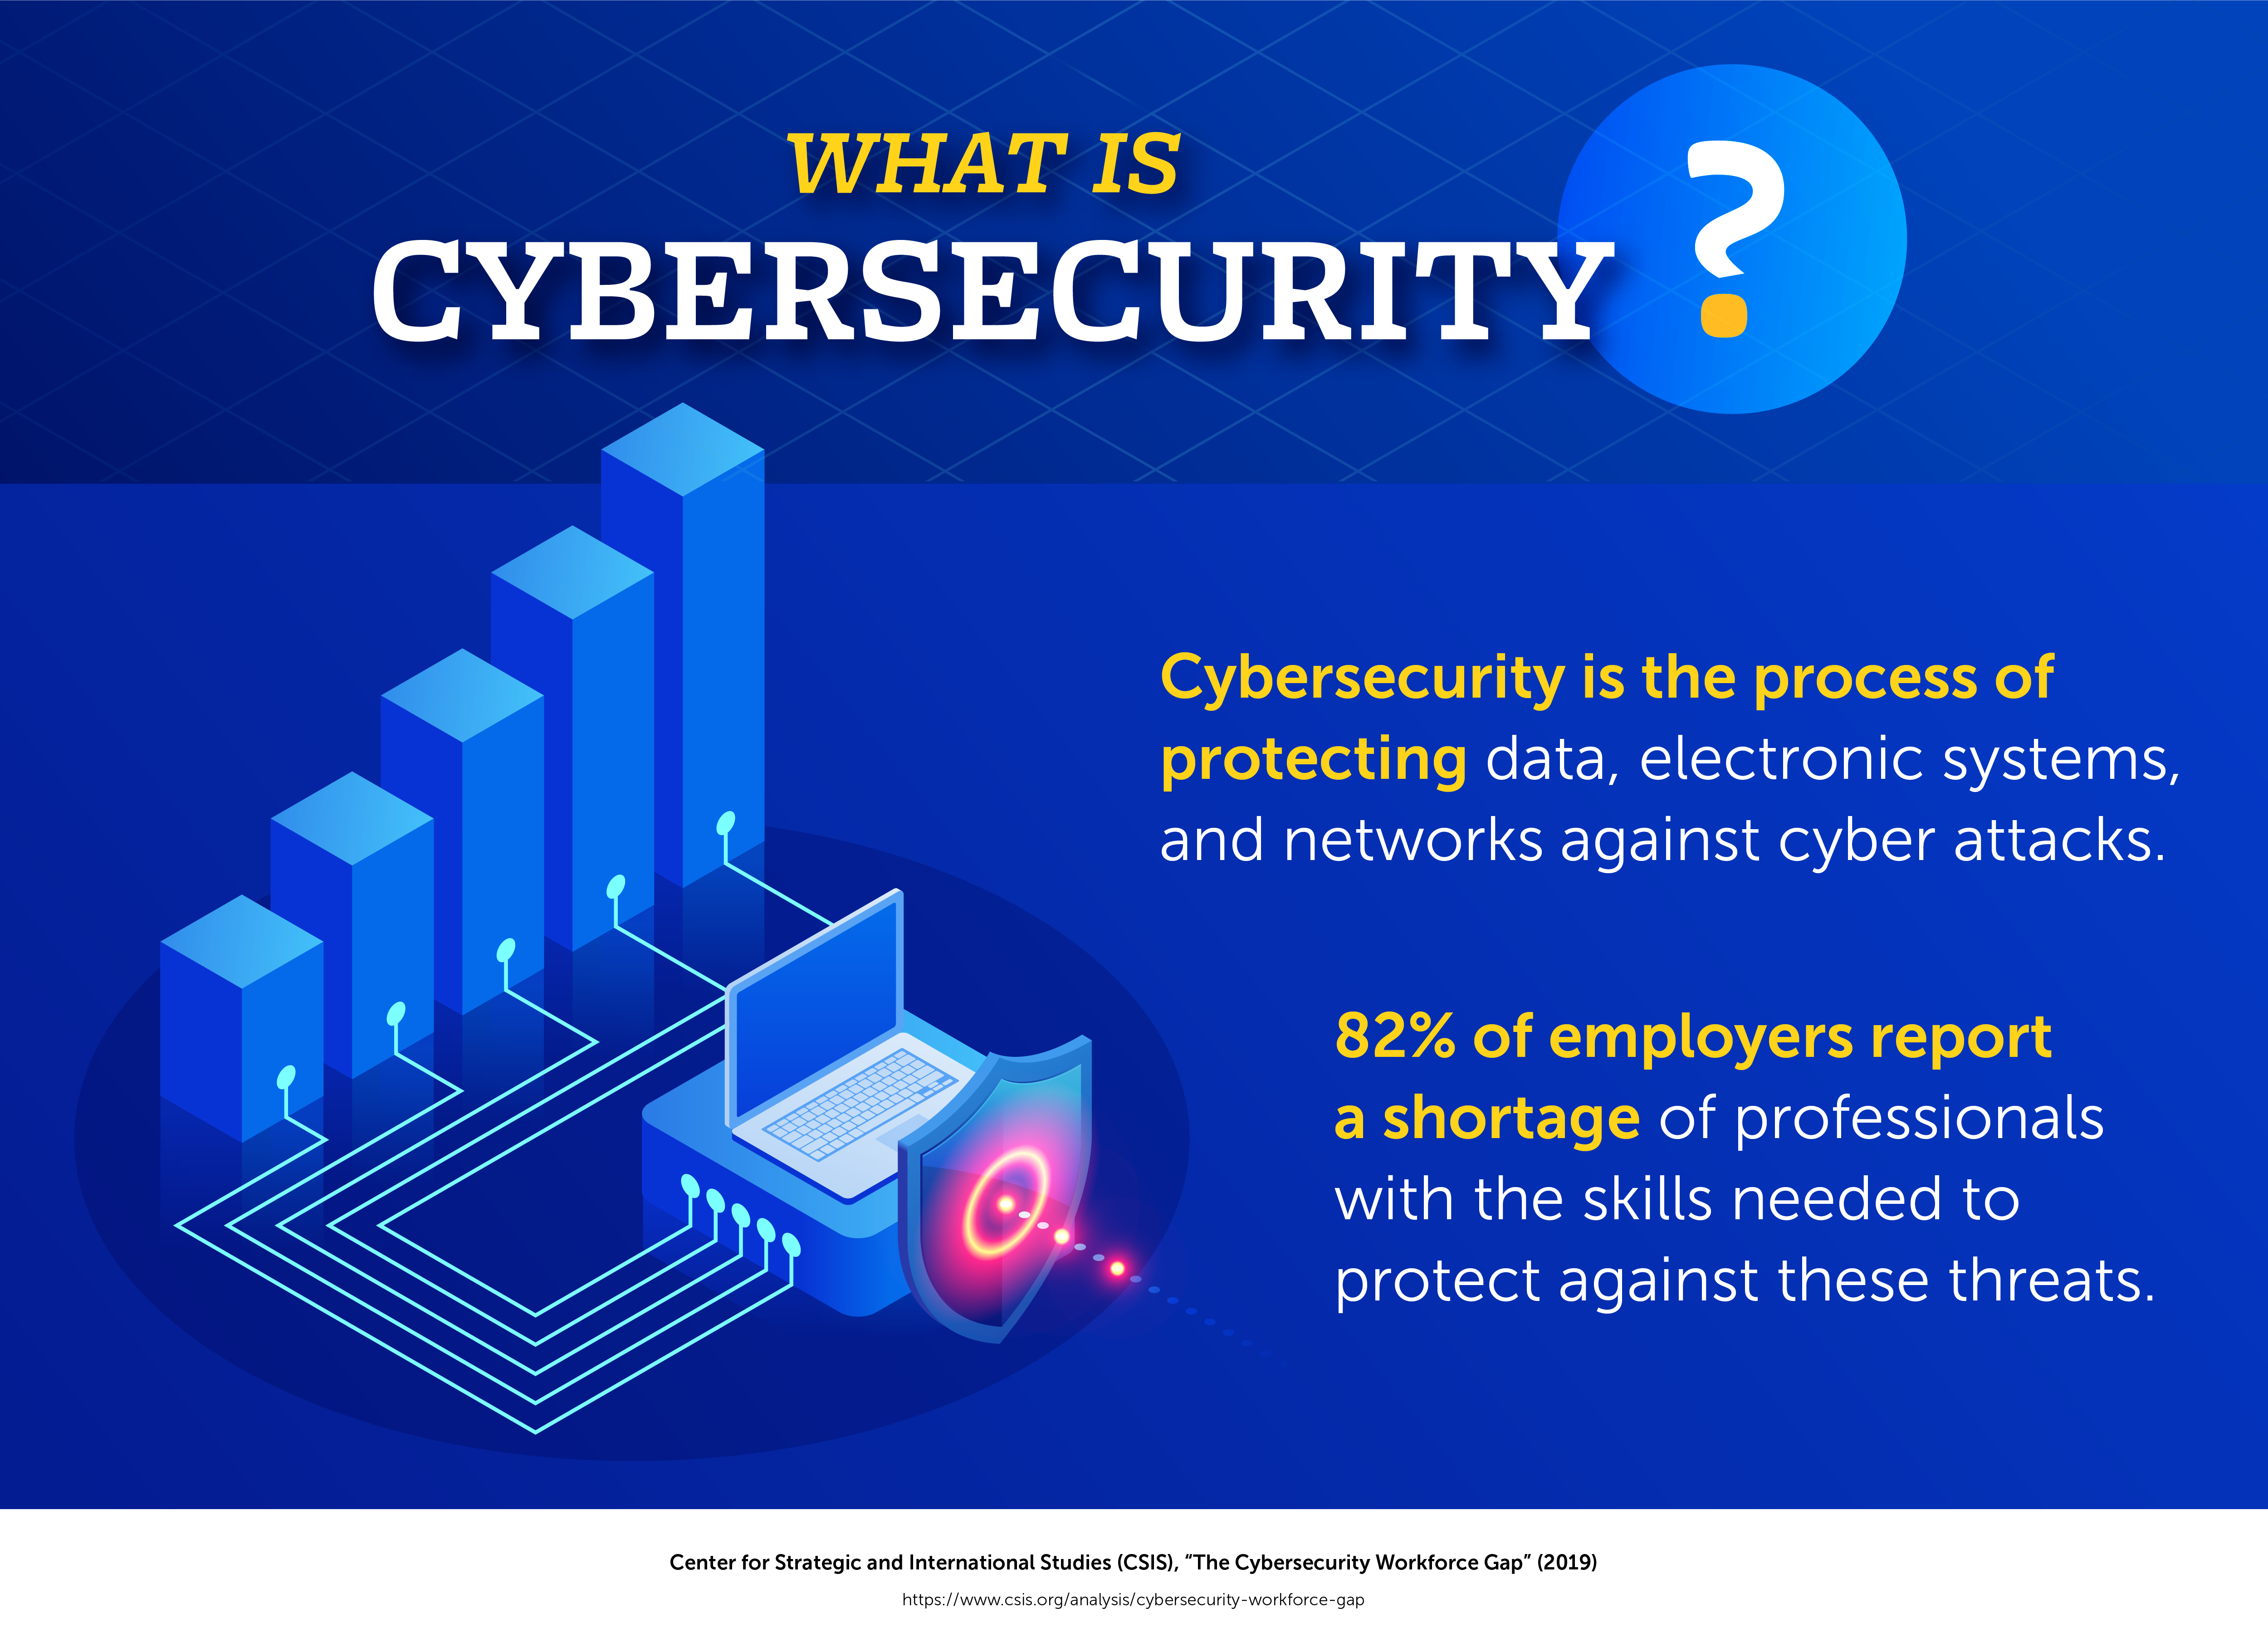 What is Cybersecurity